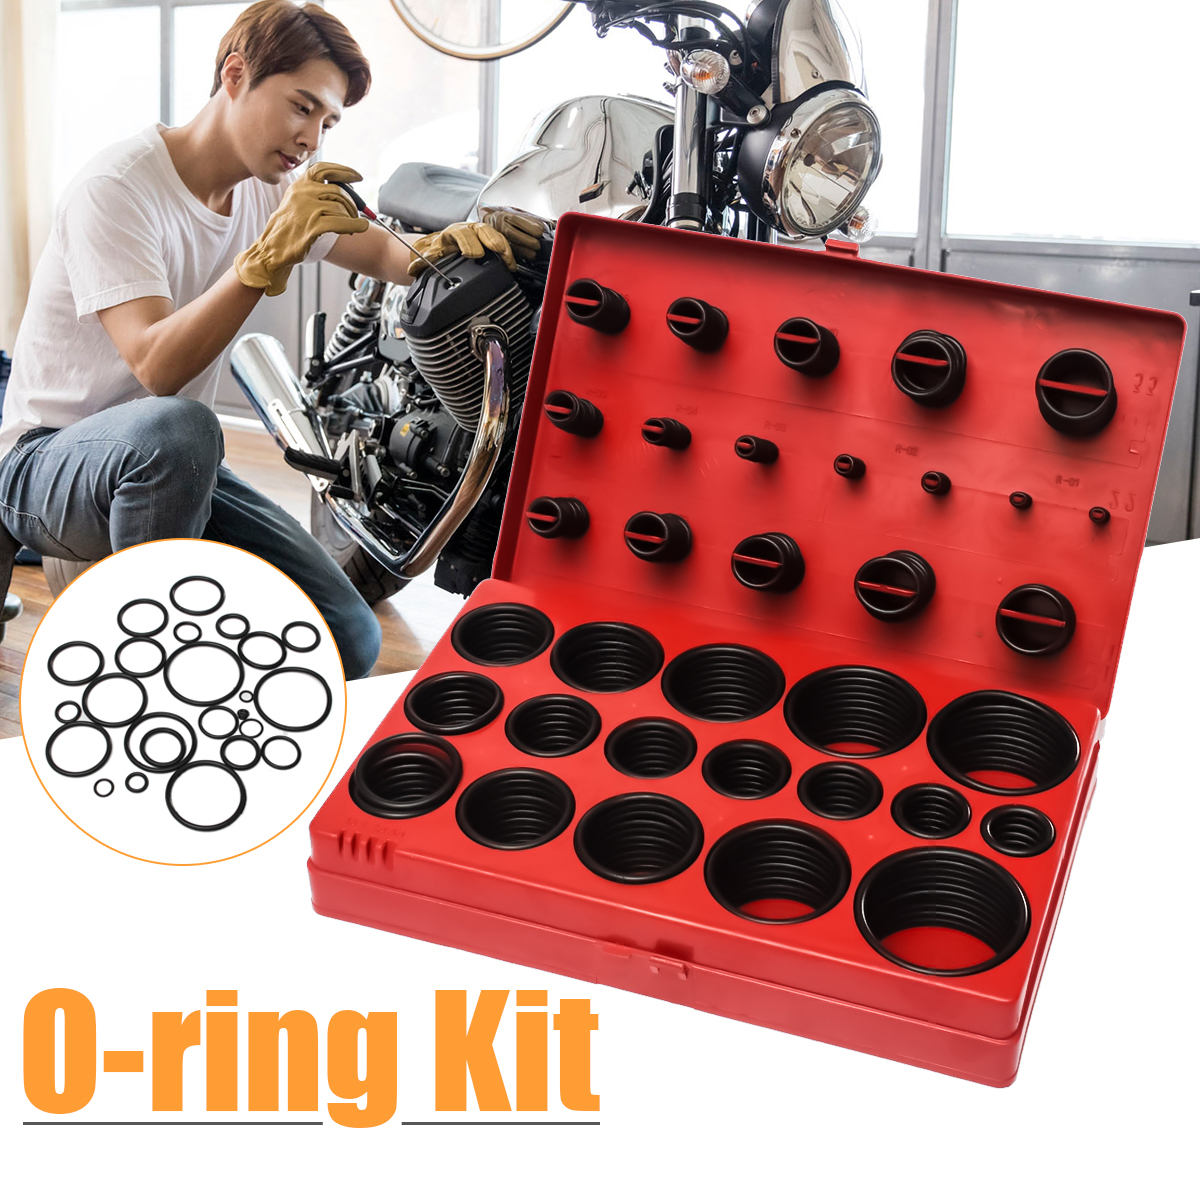 419Pcs Assorted O Ring Rubber Seal Assortment Set Kit Garage Plumbing With Case for General Plumbers Mechanics Workshop 419pcs o ring kit set rubber washer seals gaskets plumbing garage assortment auto electric repair tools accessories